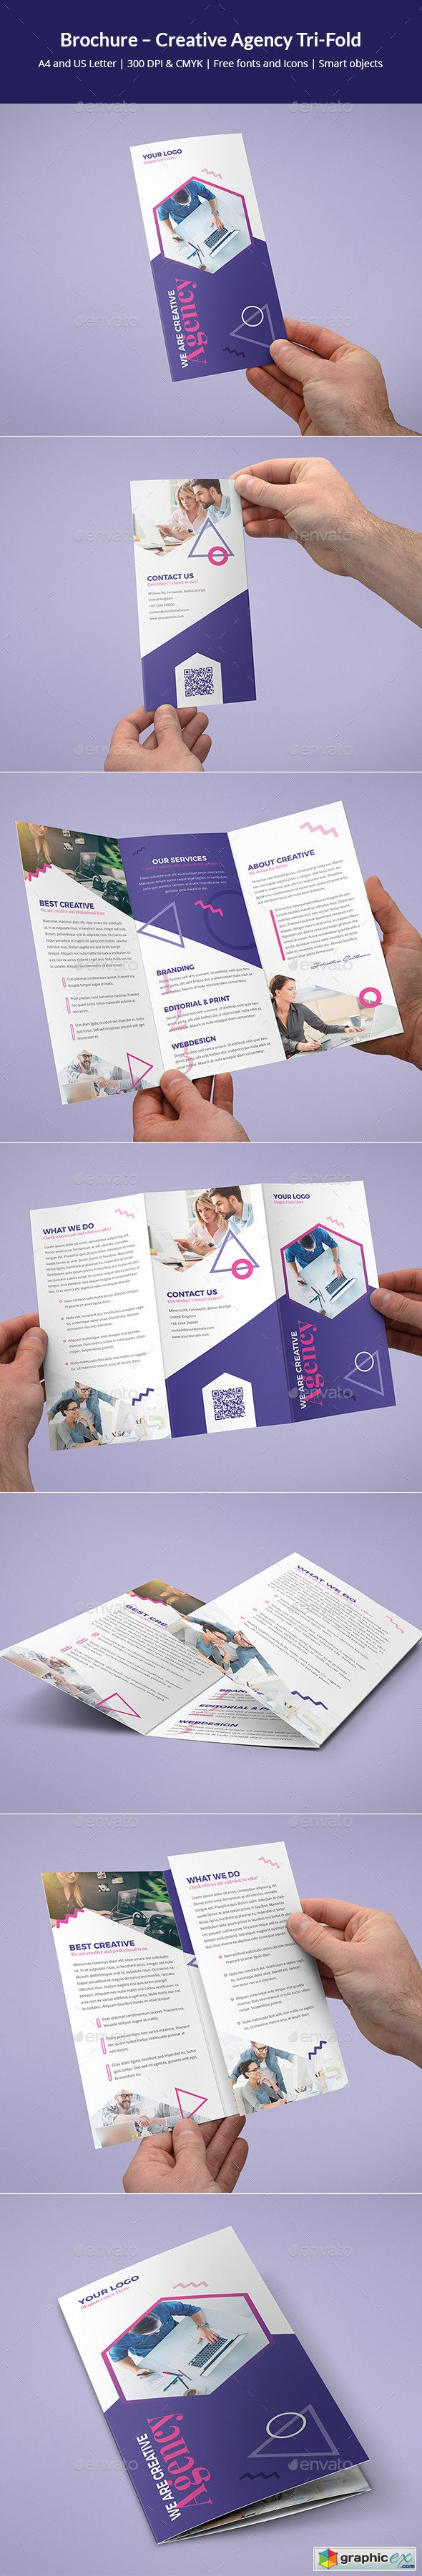 Brochure – Creative Agency Tri-Fold